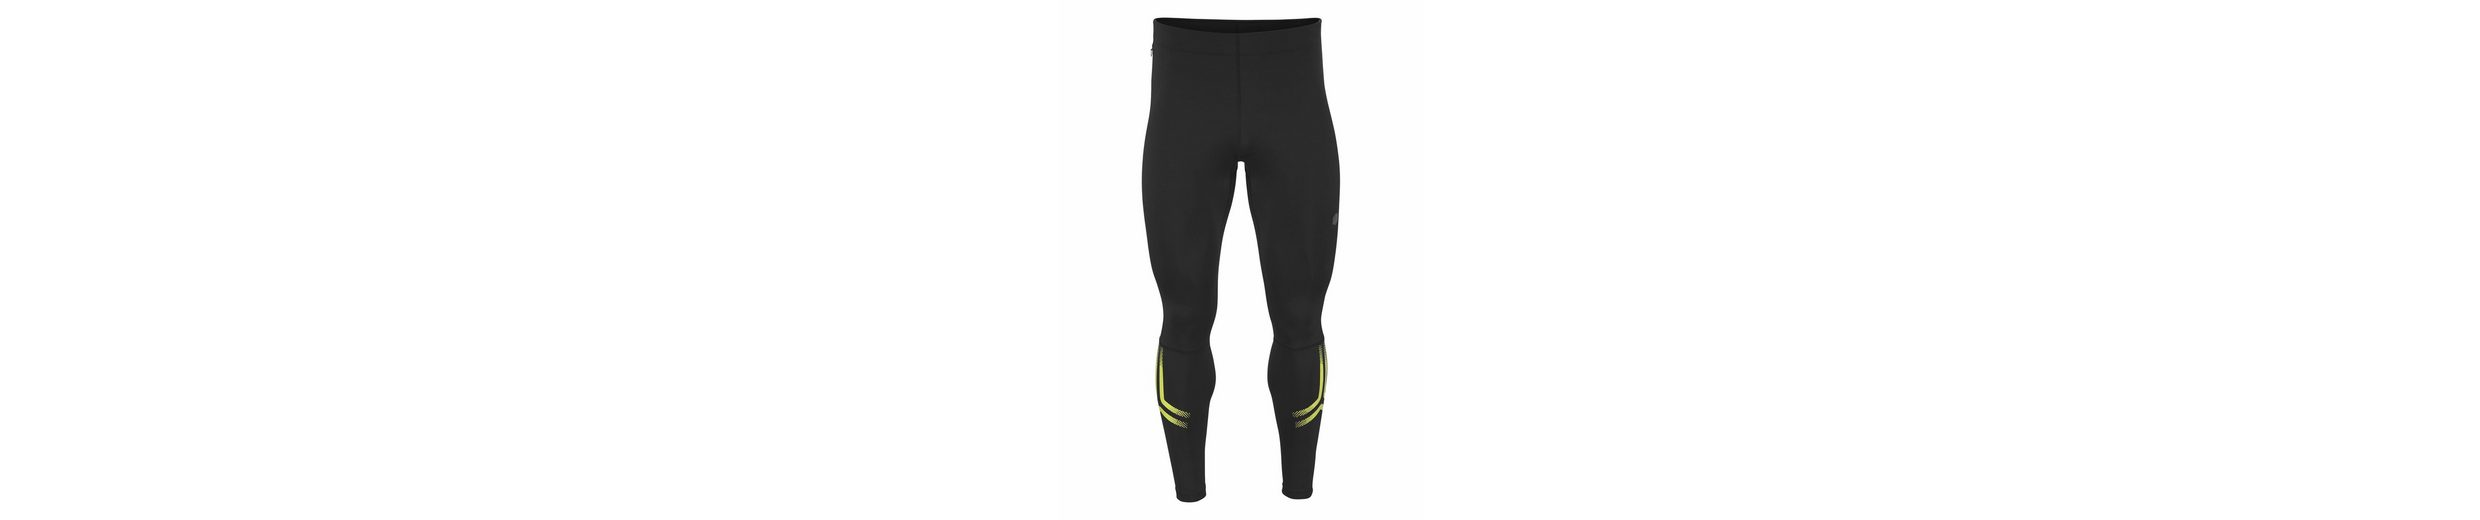 Asics Icon Lauftights Asics Lauftights Tight Icon Tight Asics wTxv4qYnIv